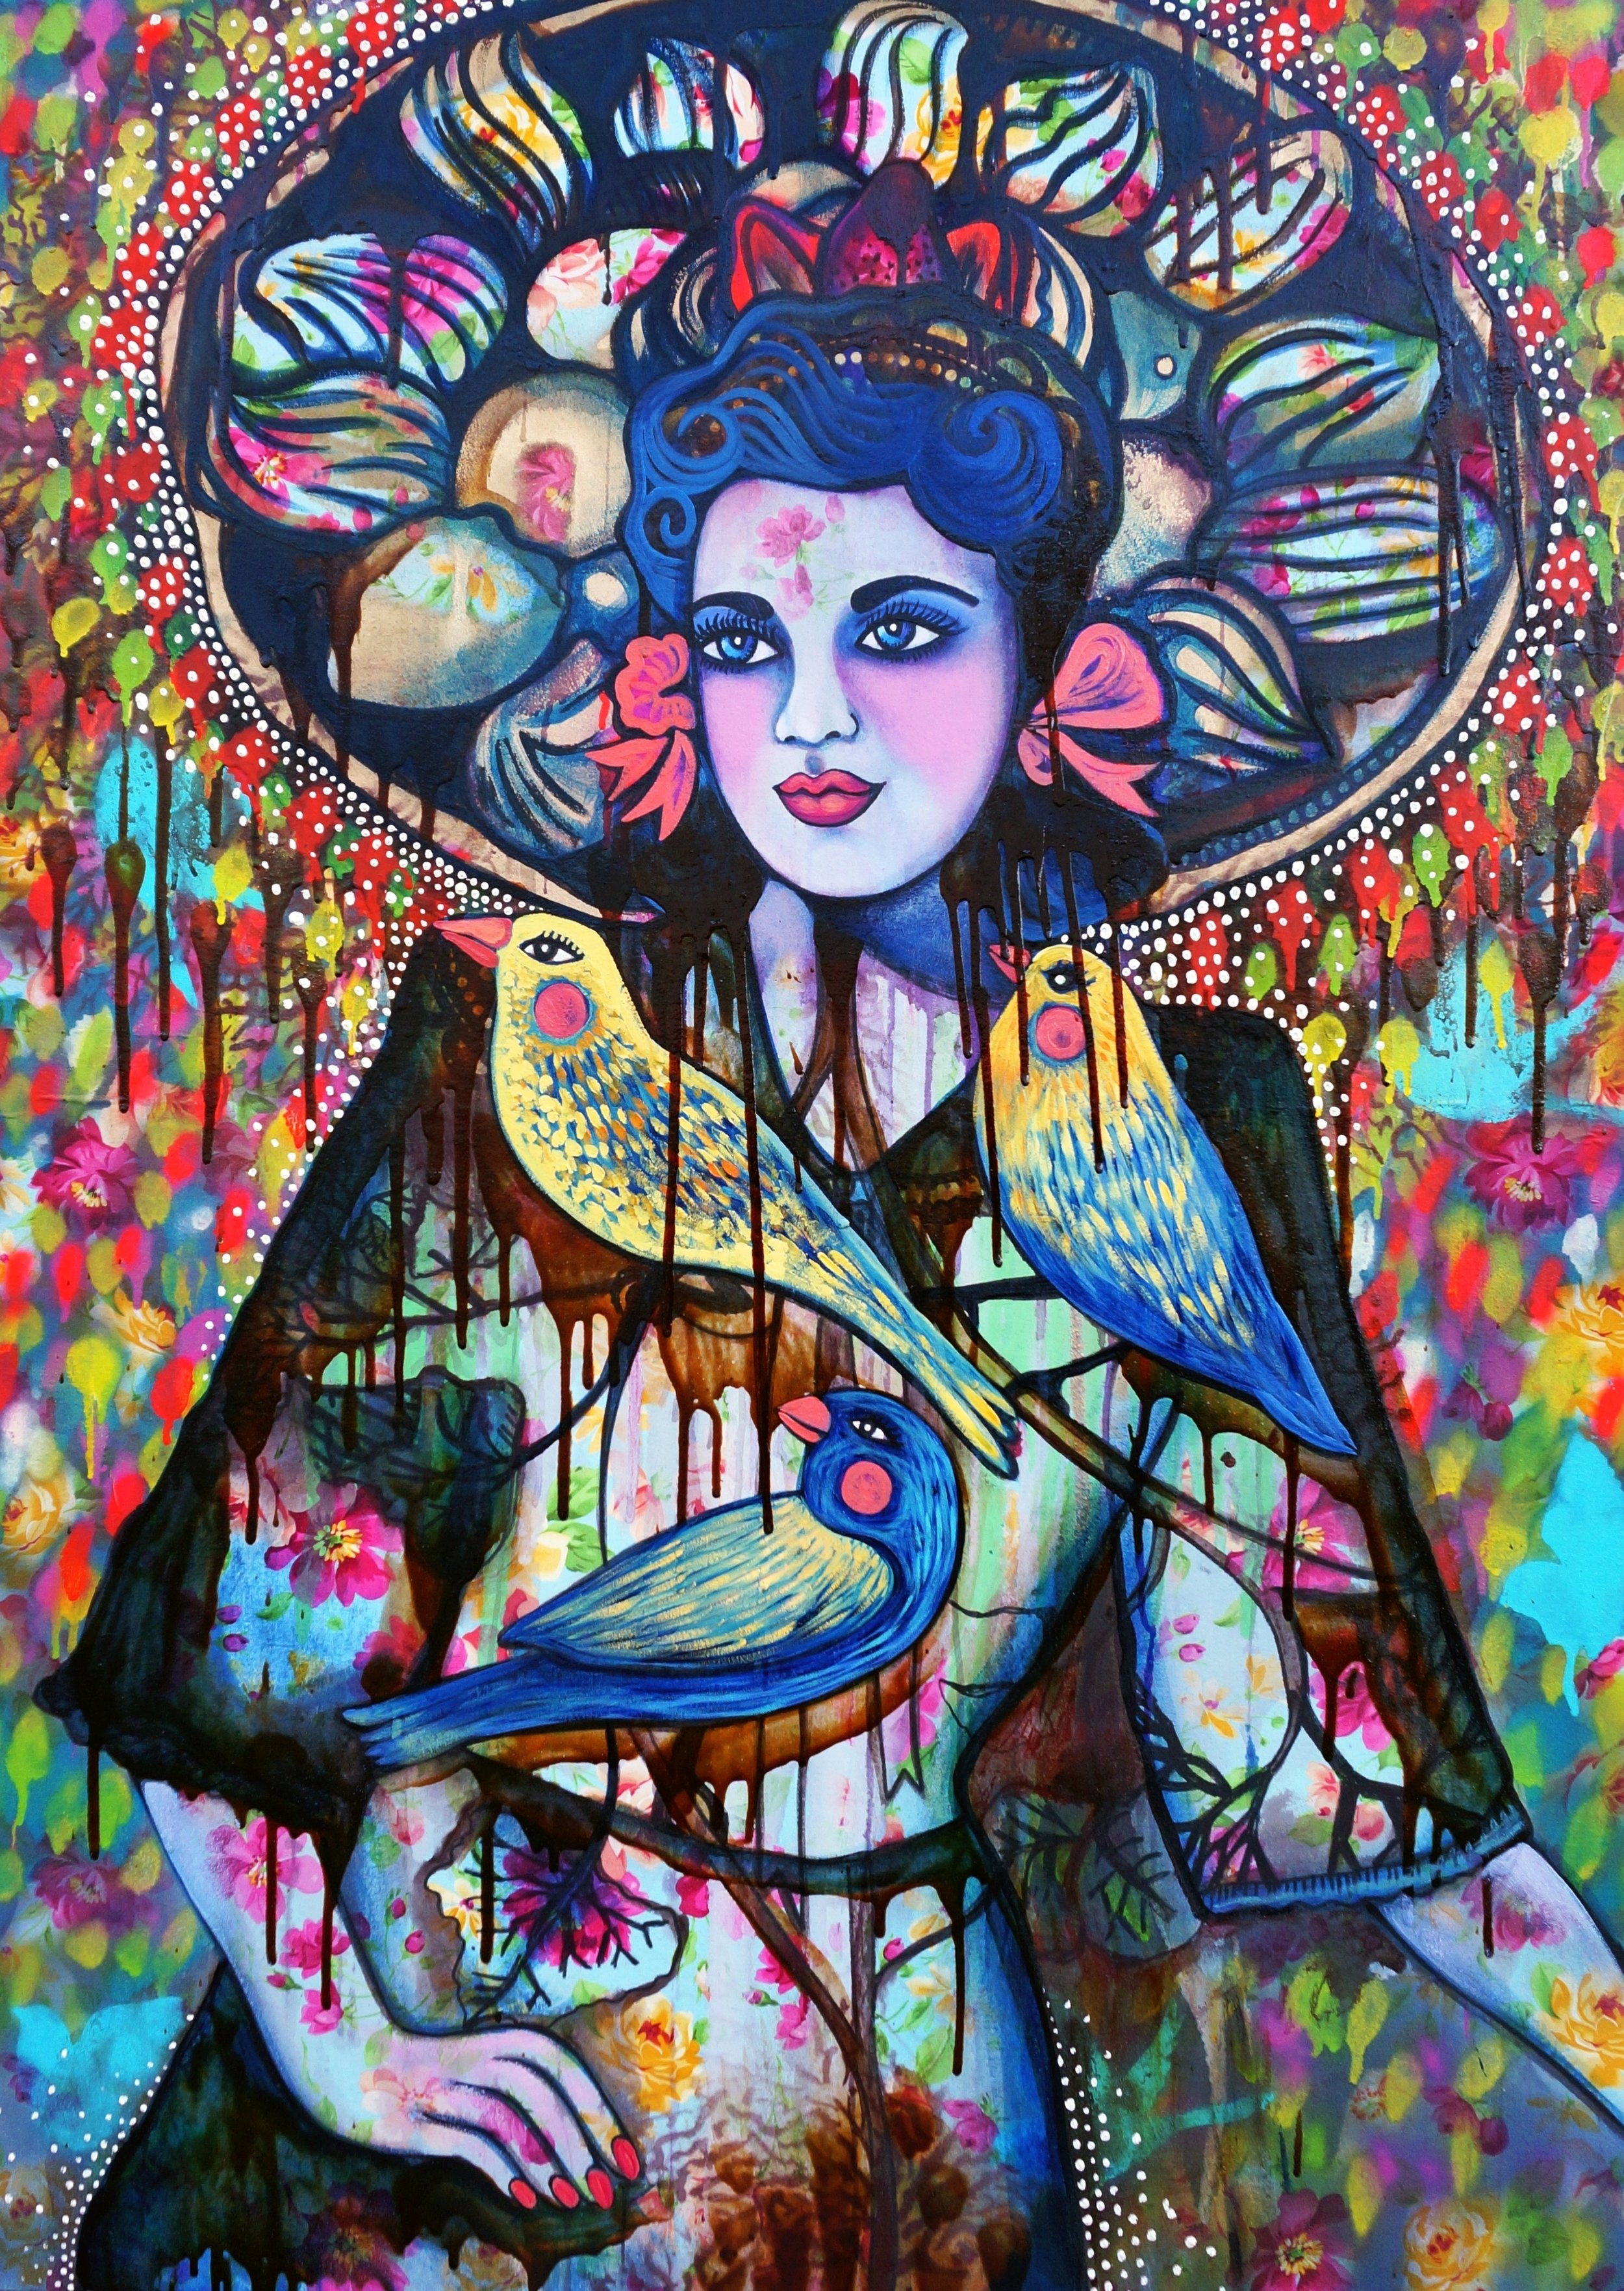 Hickey, S. 2016. Girl with Dessert Sombrero (Sweet treats in the shadows), 93 x 130 cm, oil and mixed media on canvas.